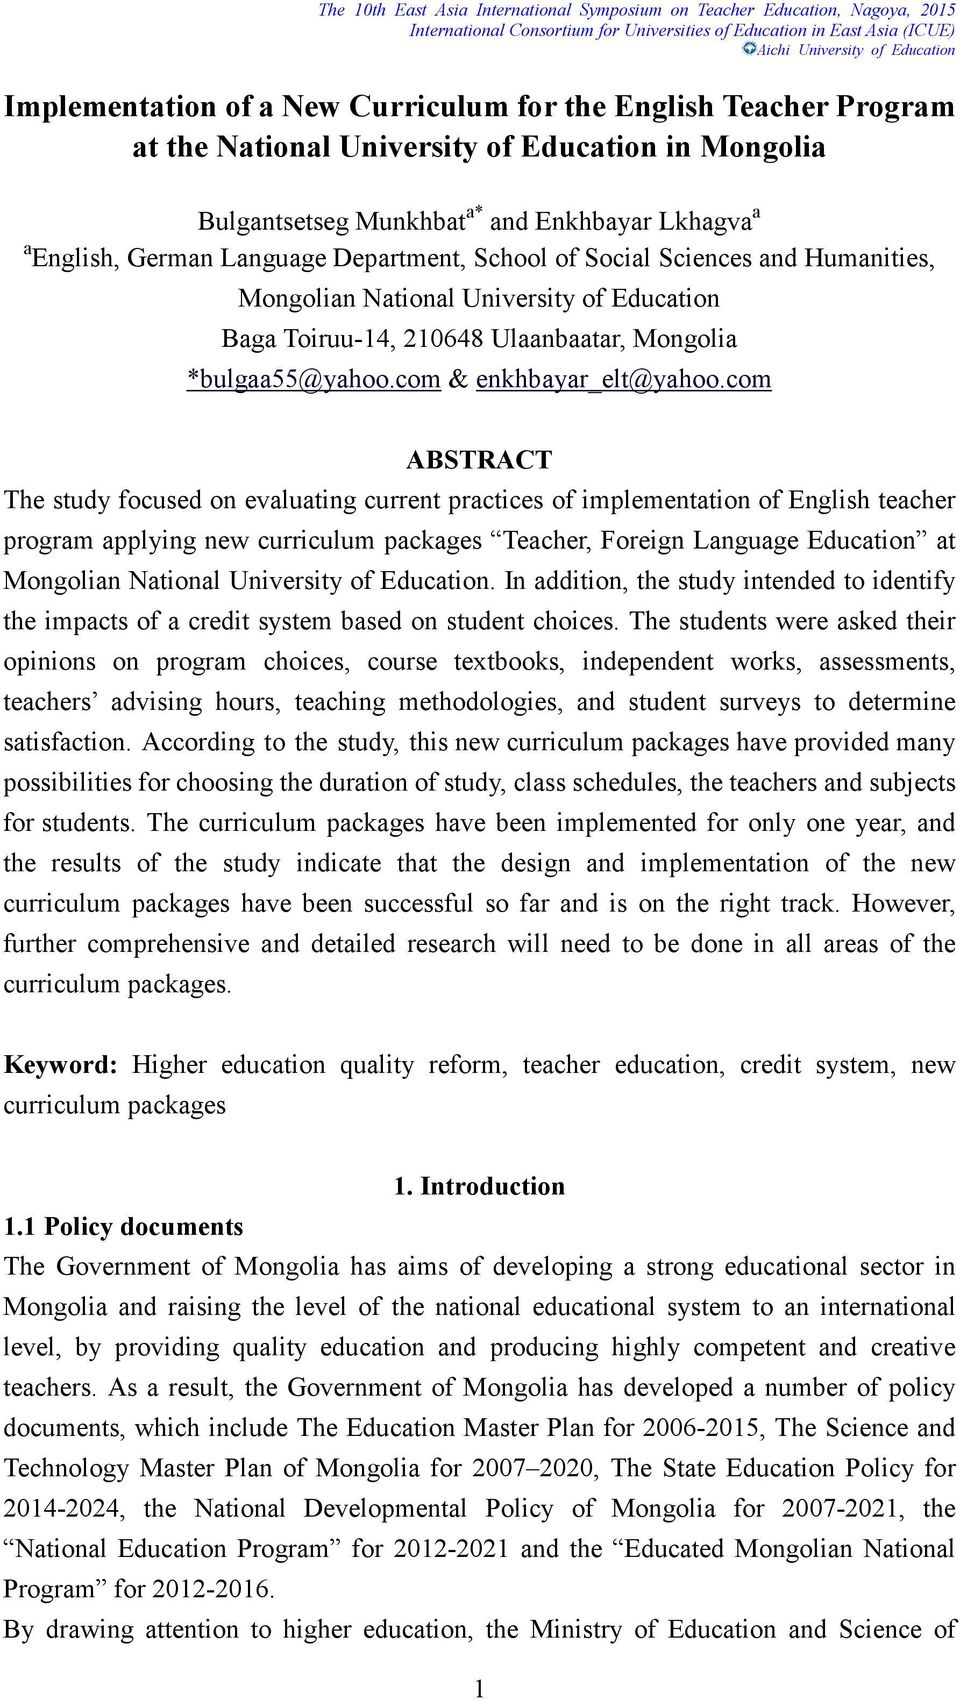 com ABSTRACT The study focused on evaluating current practices of implementation of English teacher program applying new curriculum packages Teacher, Foreign Language Education at Mongolian National